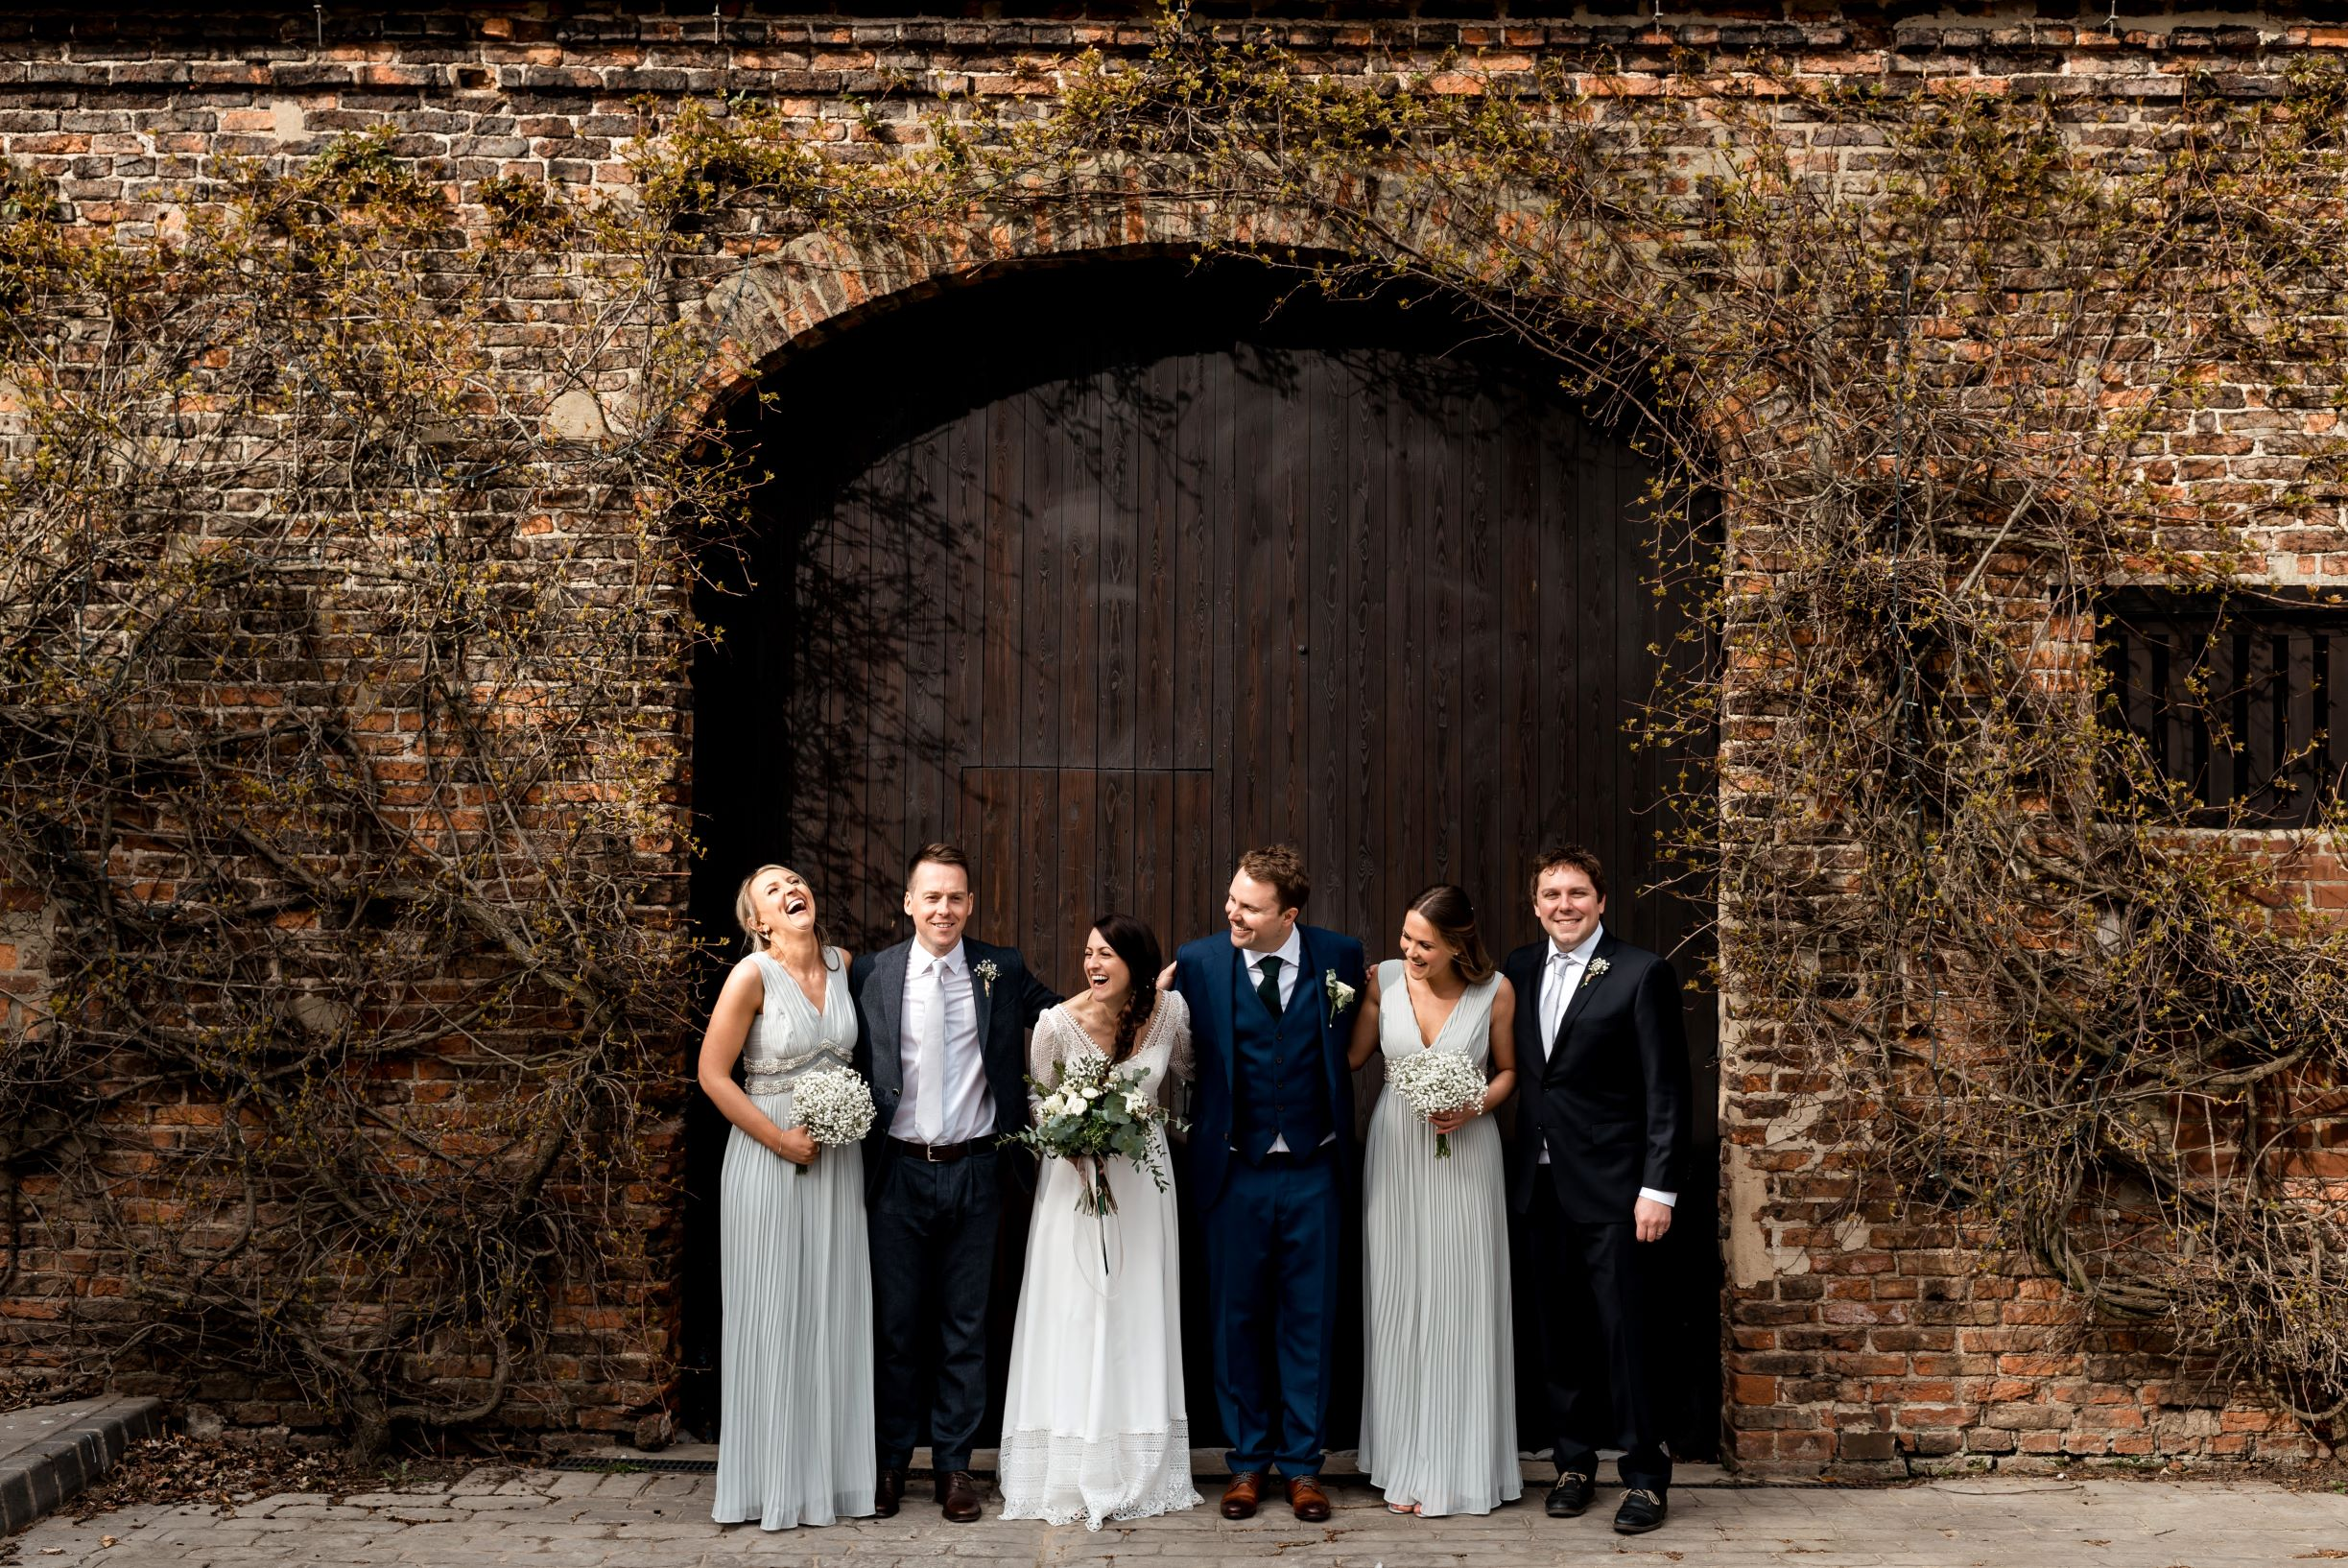 Laura and James with their bridesmaids and groomsmen.jpg